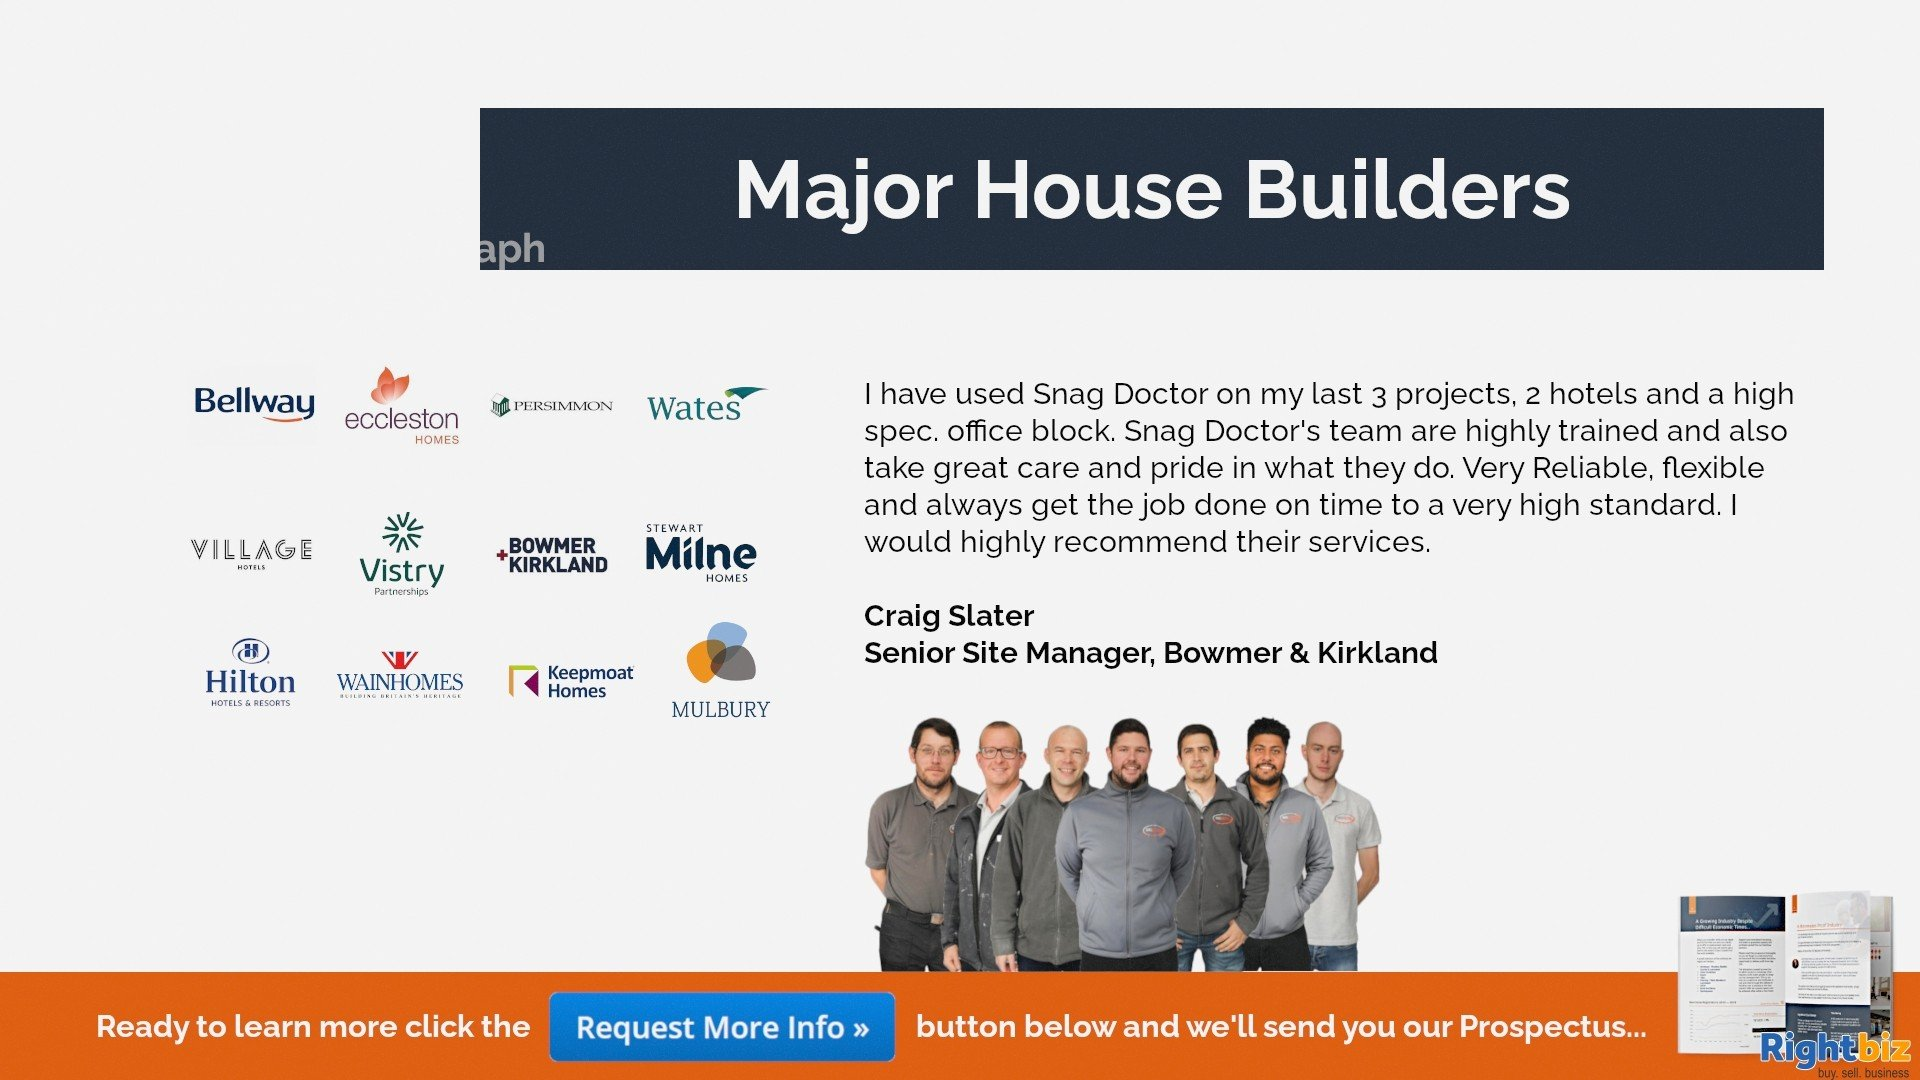 Snag Doctor 100% Govt Funded Franchise in Saint Asaph With Huge Demand from Major House Builders - Image 5